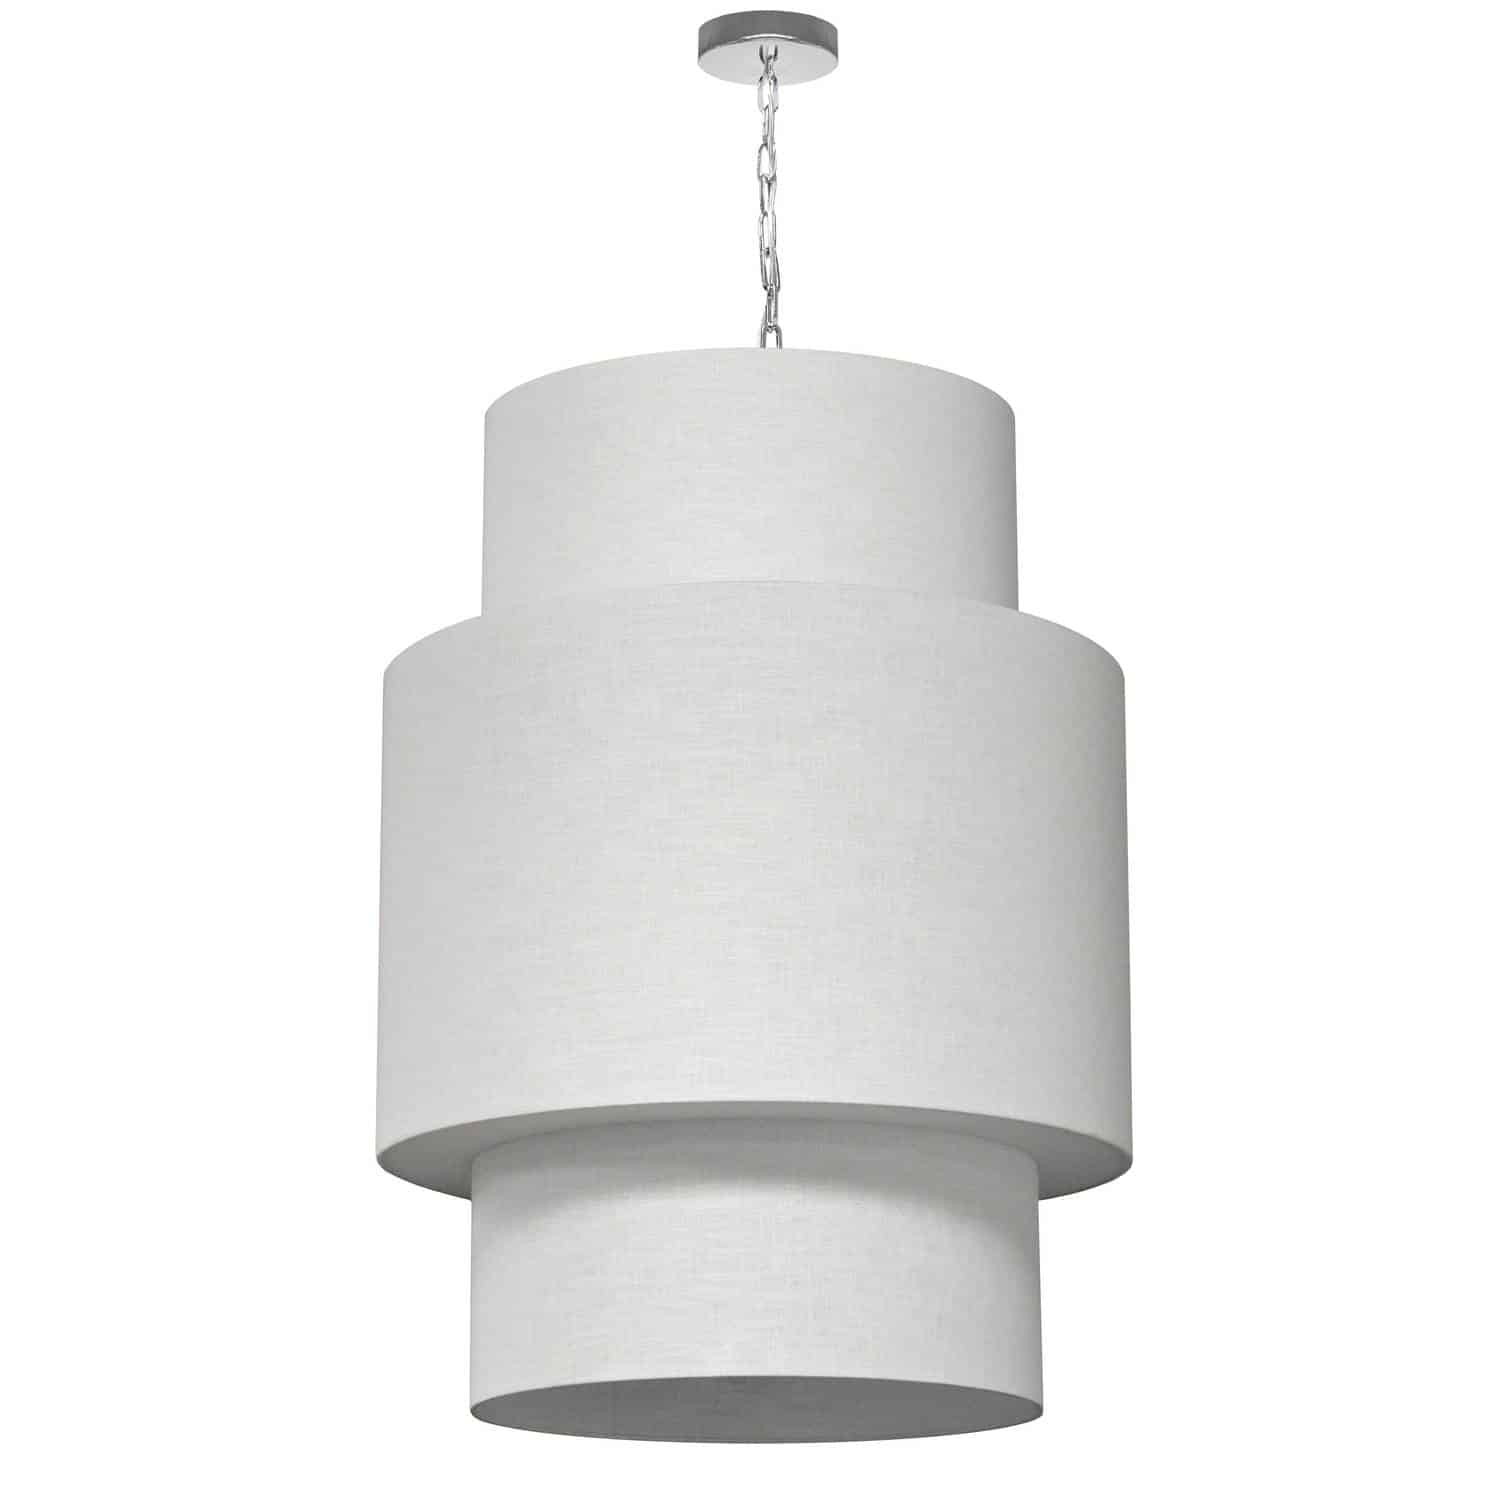 7 Light 3 Tiers Drum Linen Milano White, Acrylic Diffuser, Polished Chrome